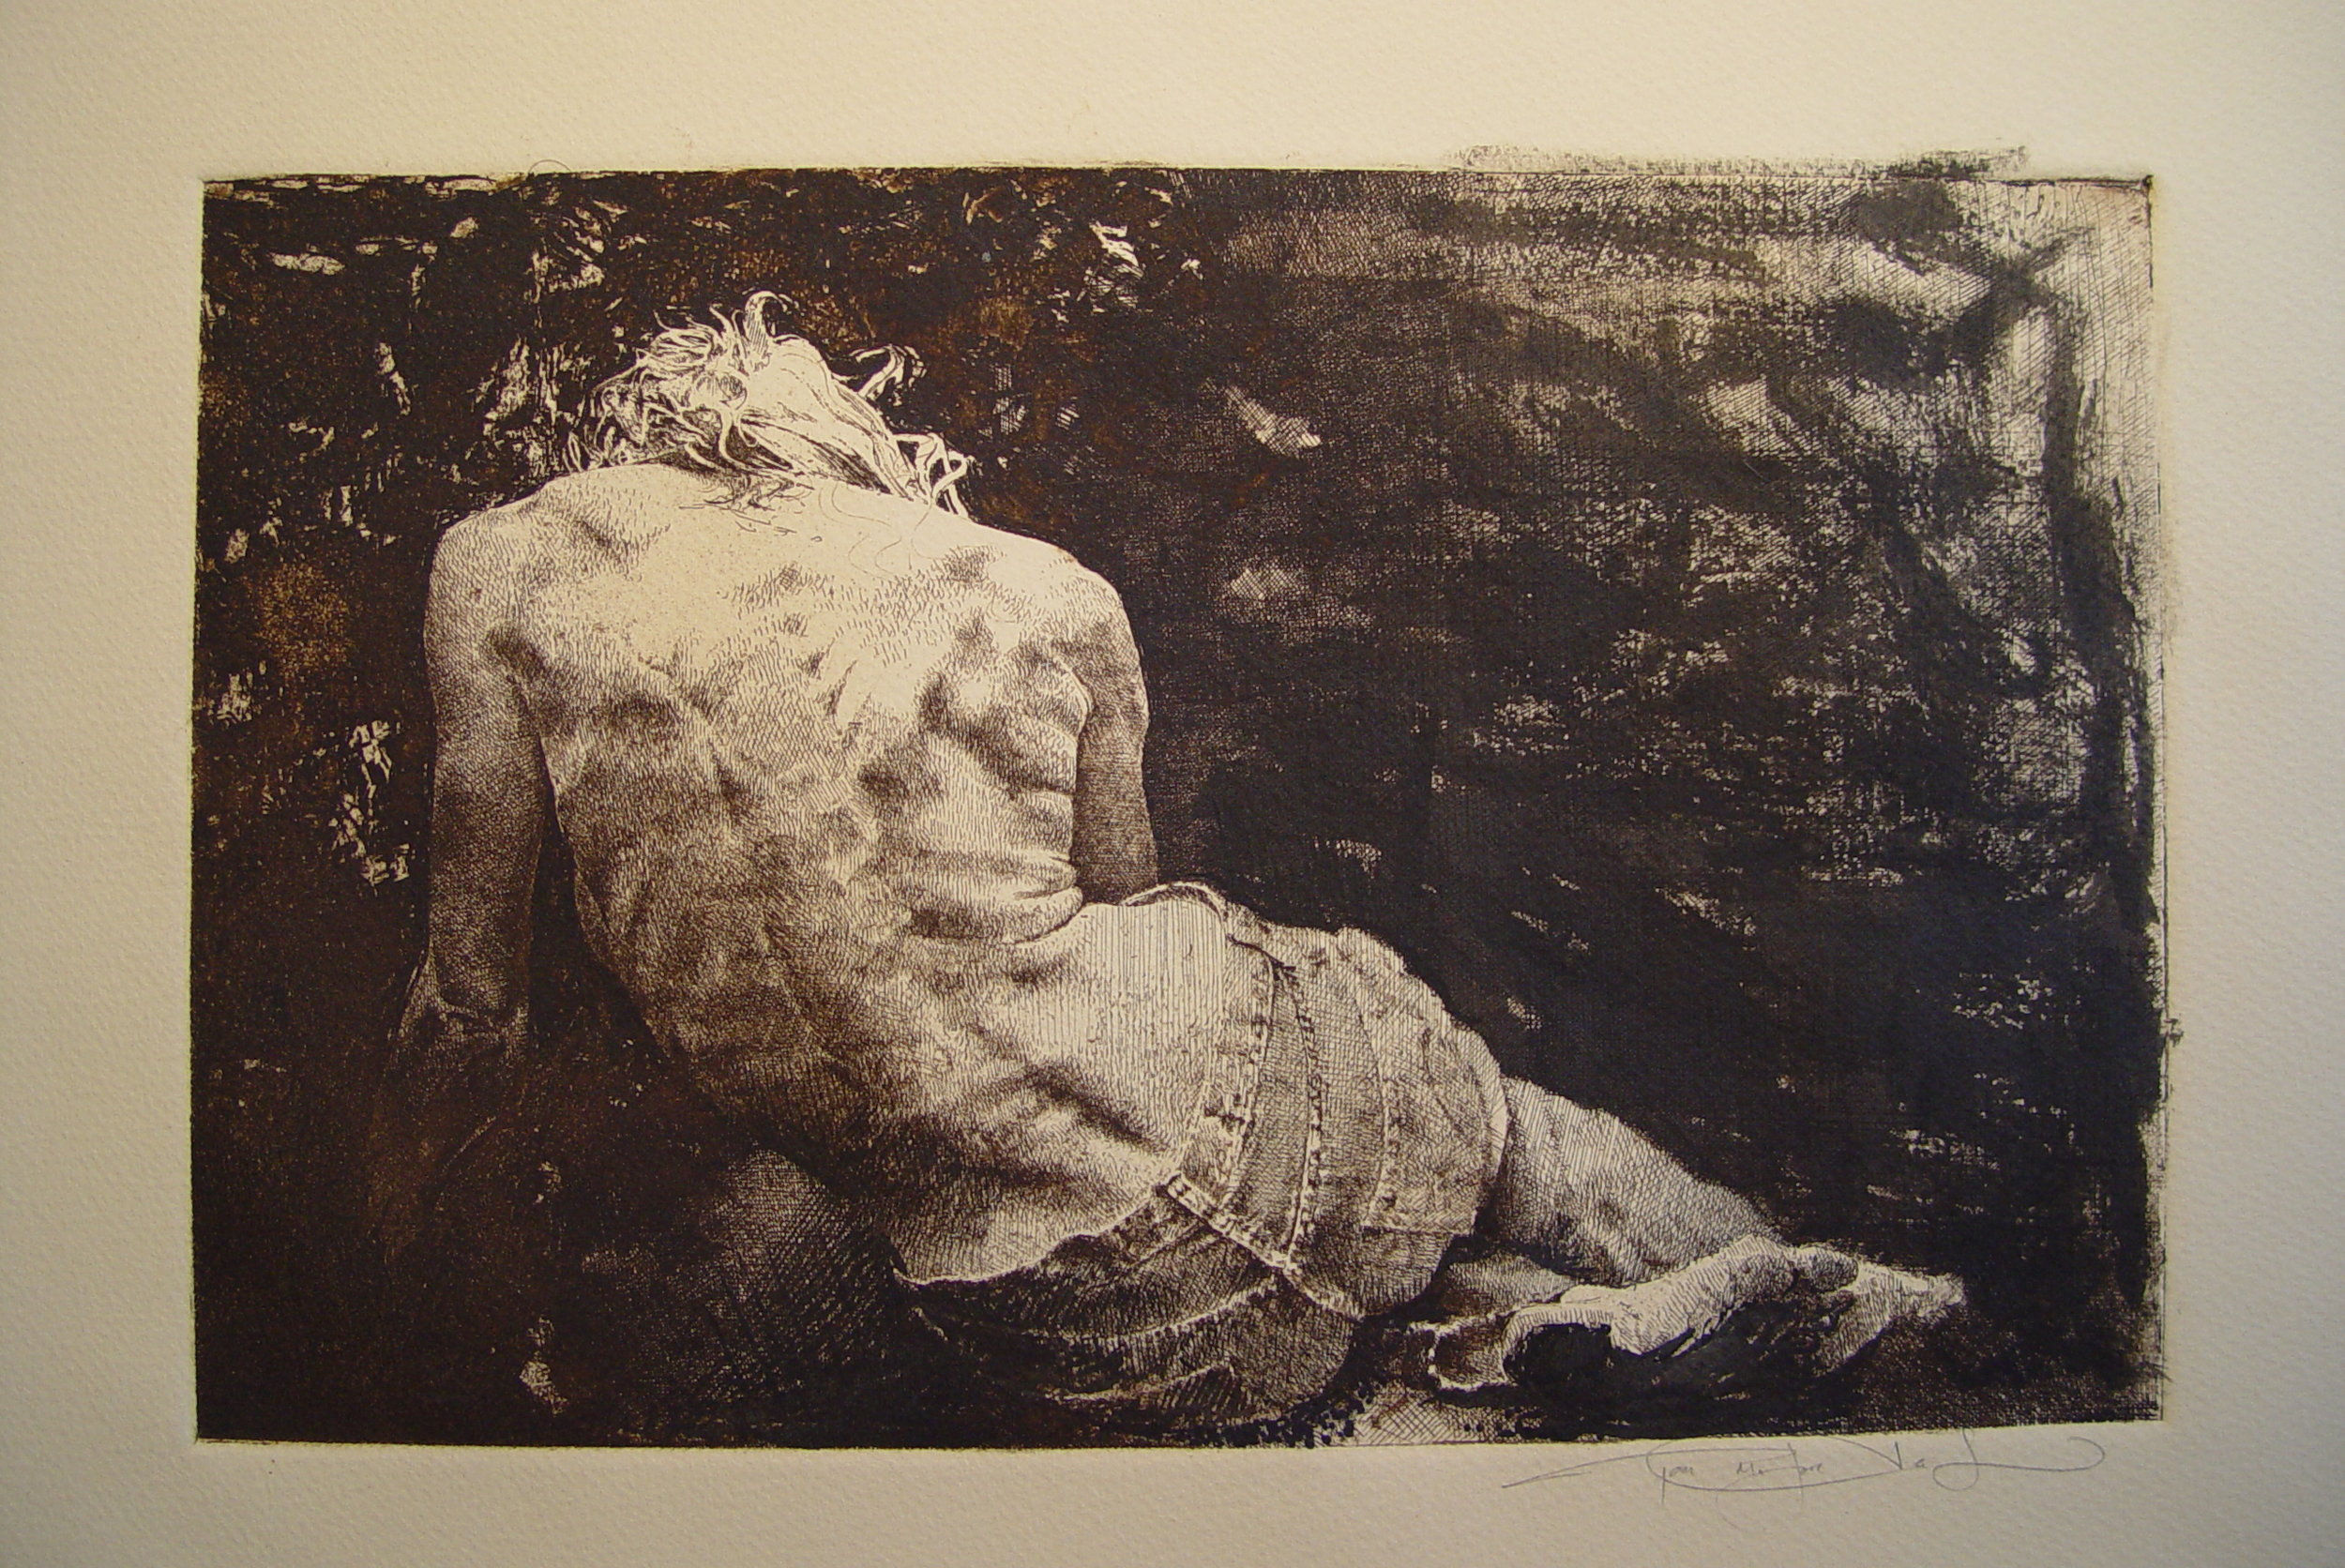 Etching 4. The Runner_etching_00_7.5x11.75_plate.jpg